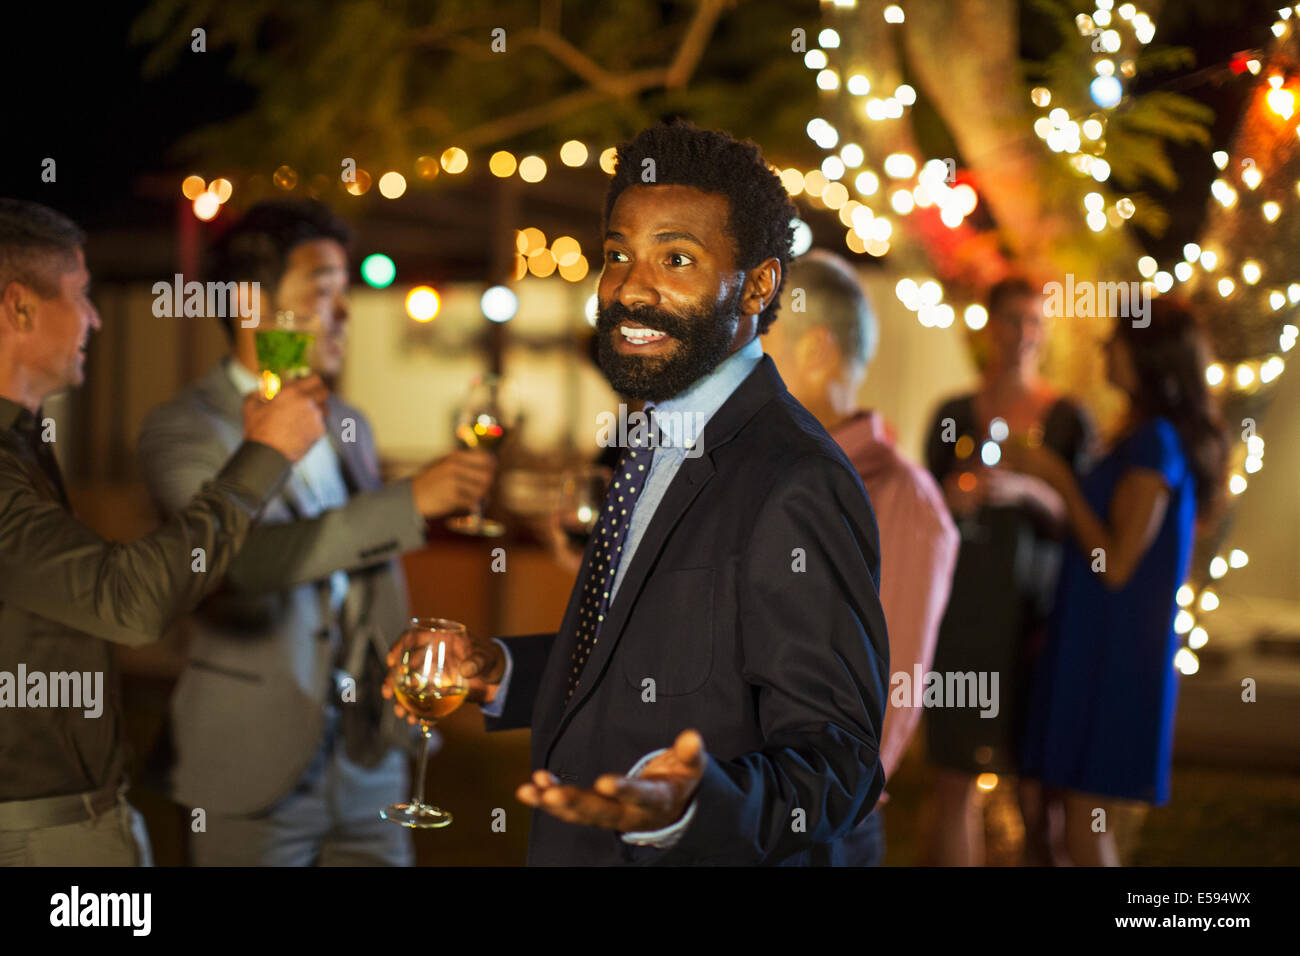 Man gesturing avec wine at party Photo Stock